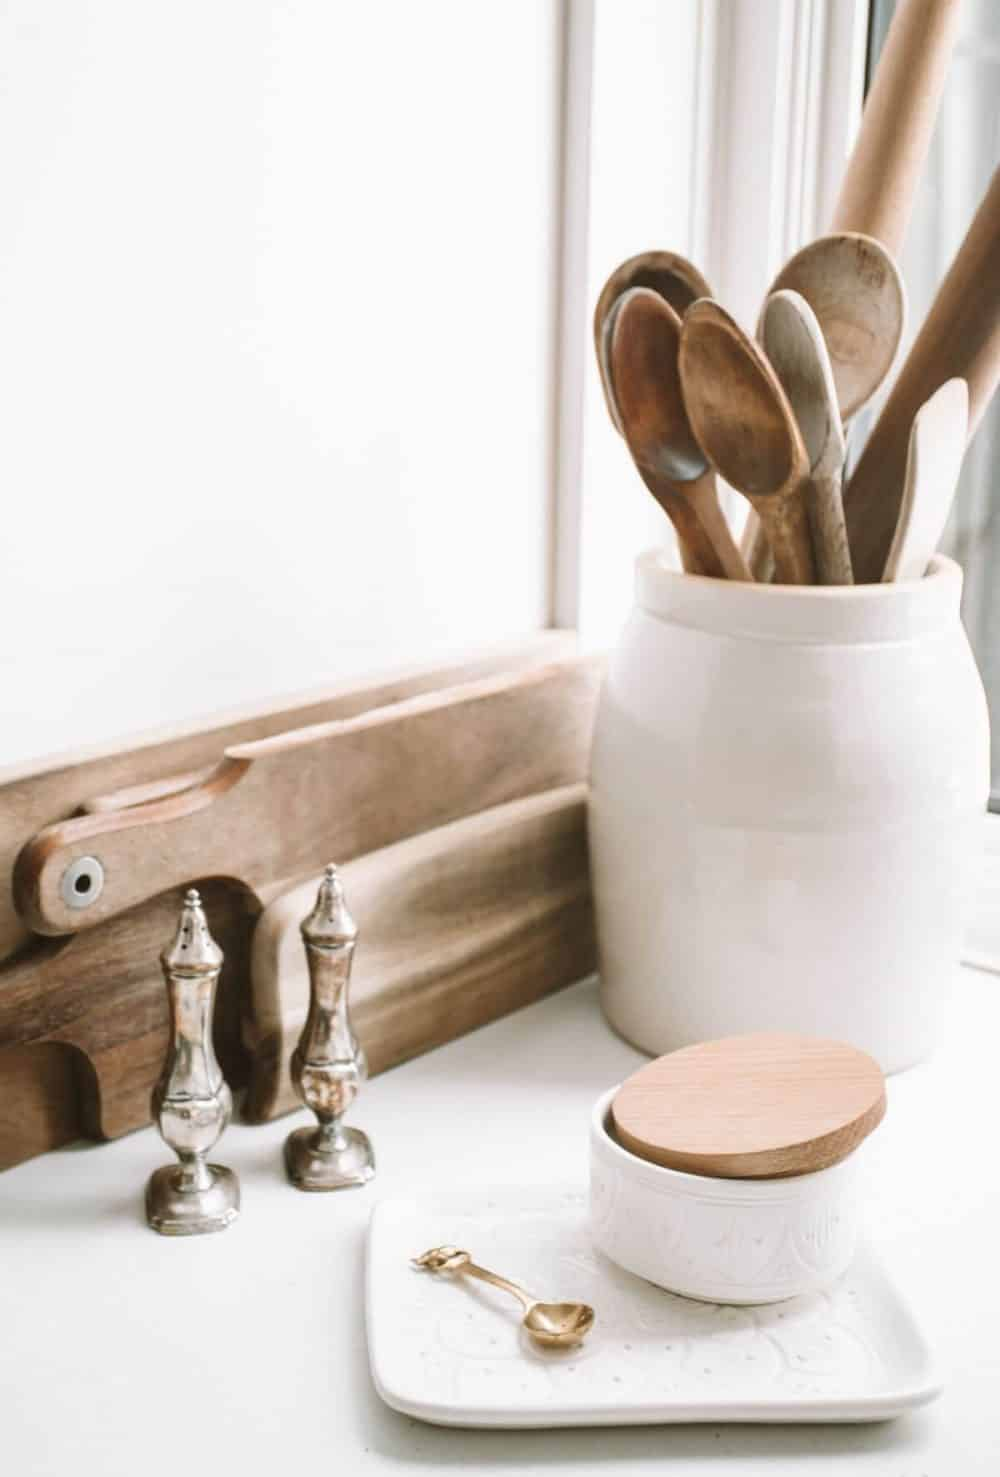 wooden kitchen tools in white crock on white counter